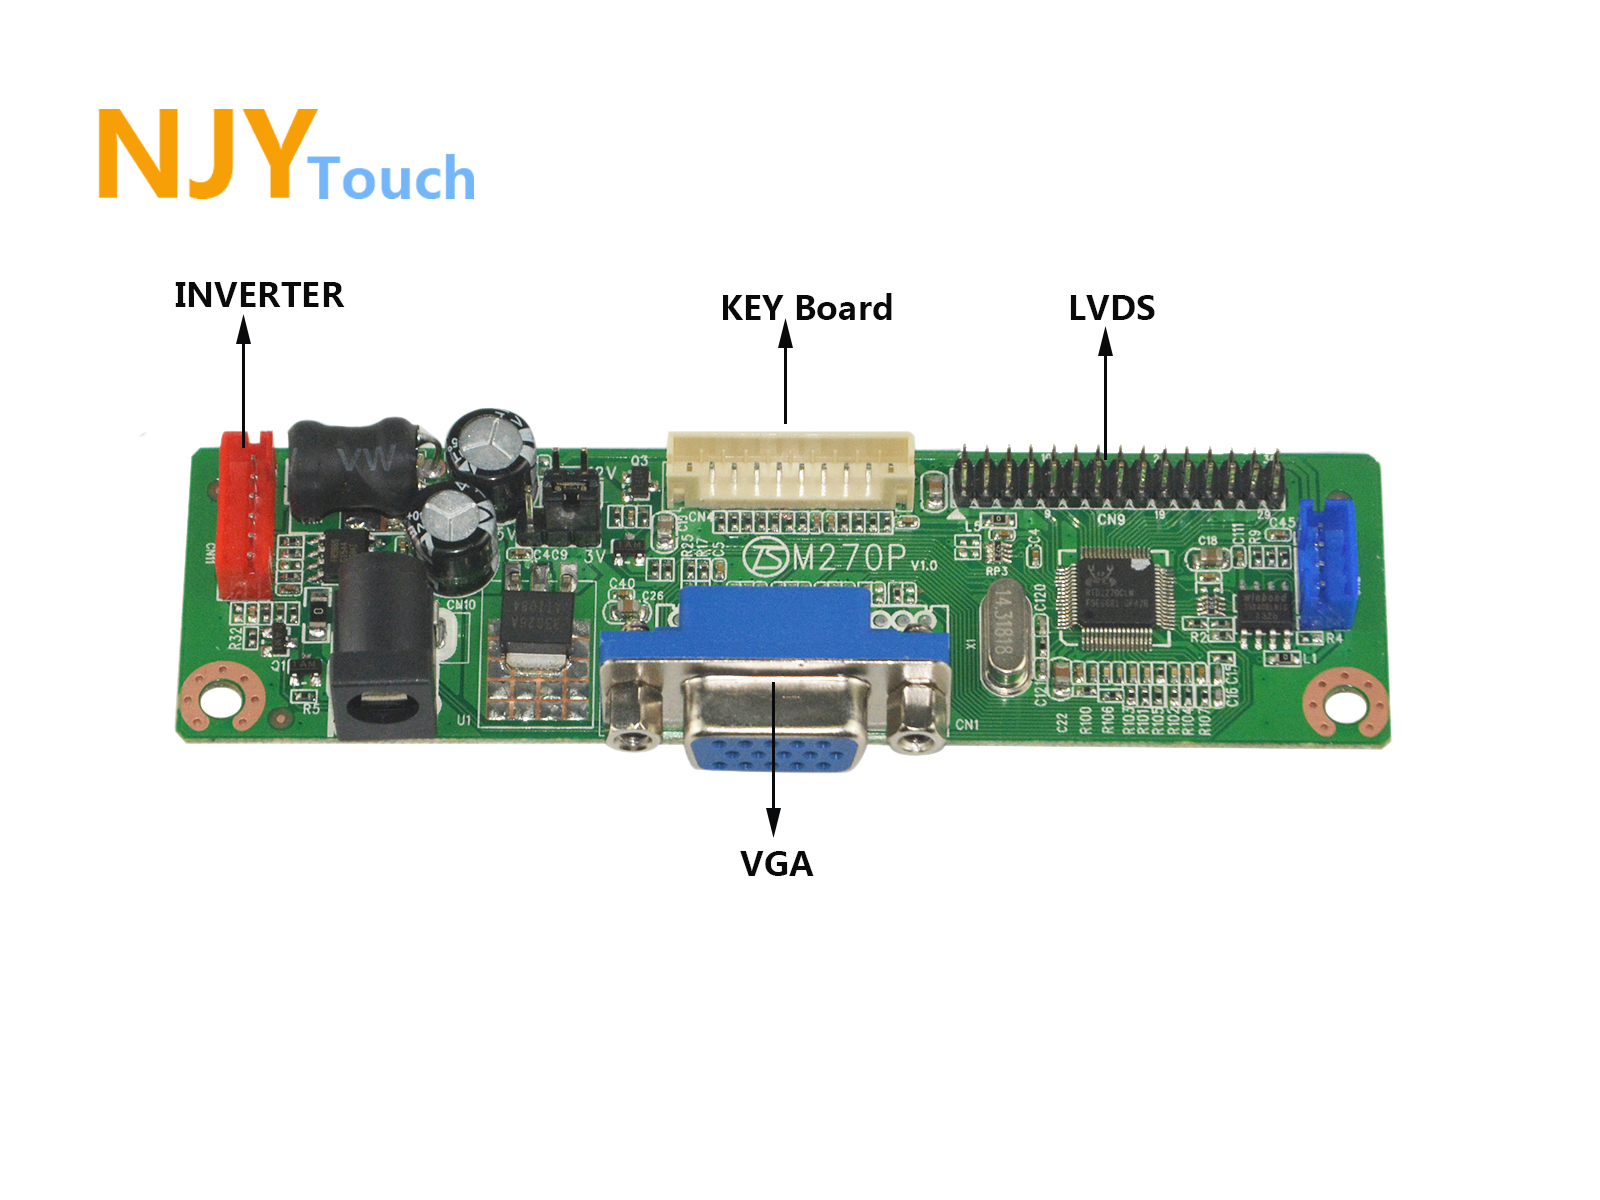 NJYTouch V.M70A VGA Controller Board For 8.9inch LP089WS1-TLA1 LP089WS1-TLA2 1024x600 LED Screen